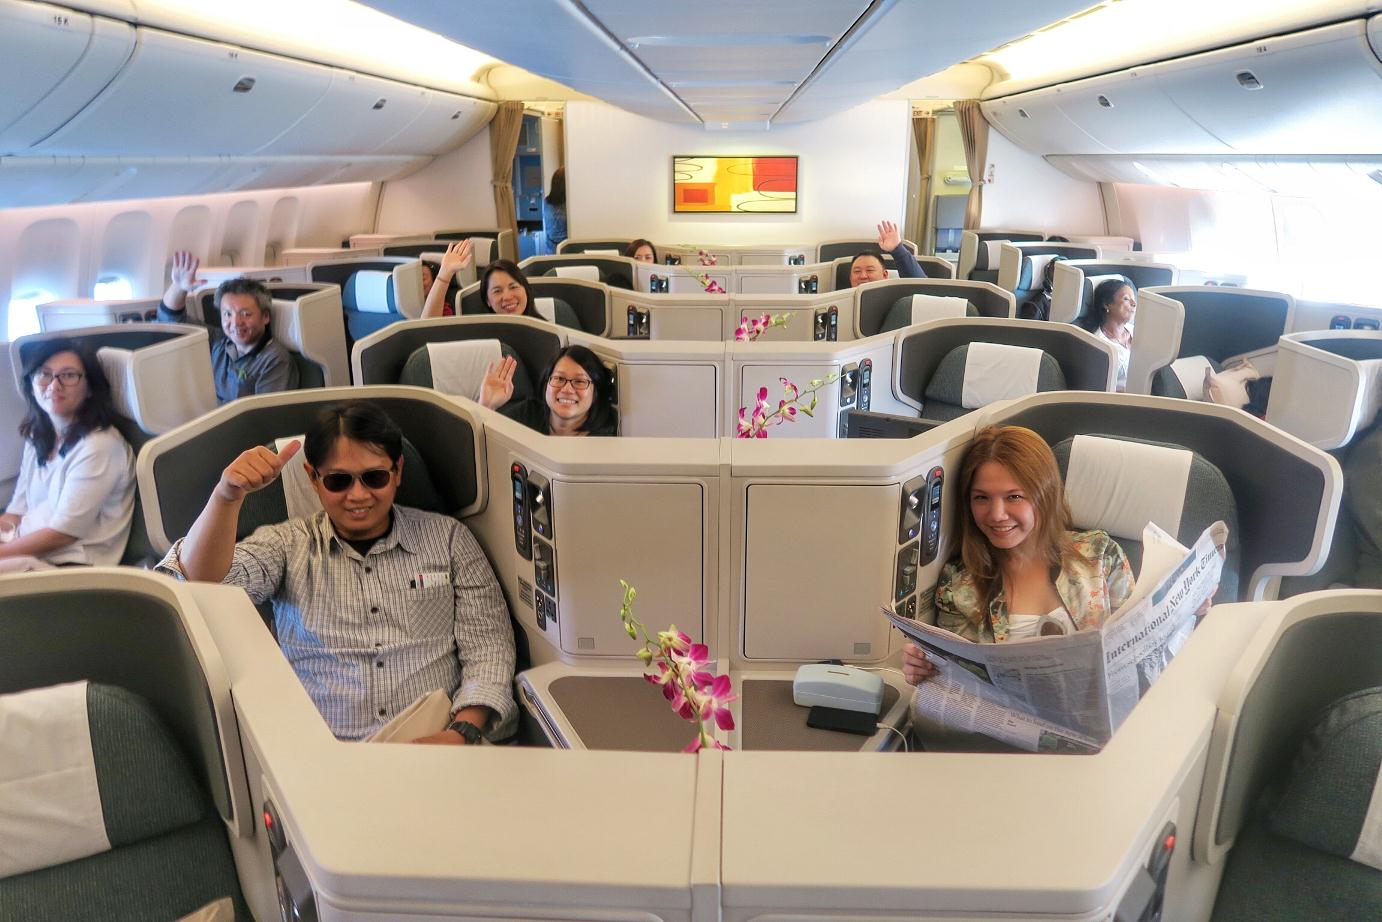 "The special CX3339 delivery flight of this Boeing 777-300ER that we ""picked up"" from Everett, Washington, was just us 40 guests (journalists around Asia + Cathay Pacific executives + engineers) occupying all of business class, plus 10 pilots and cabin crew."